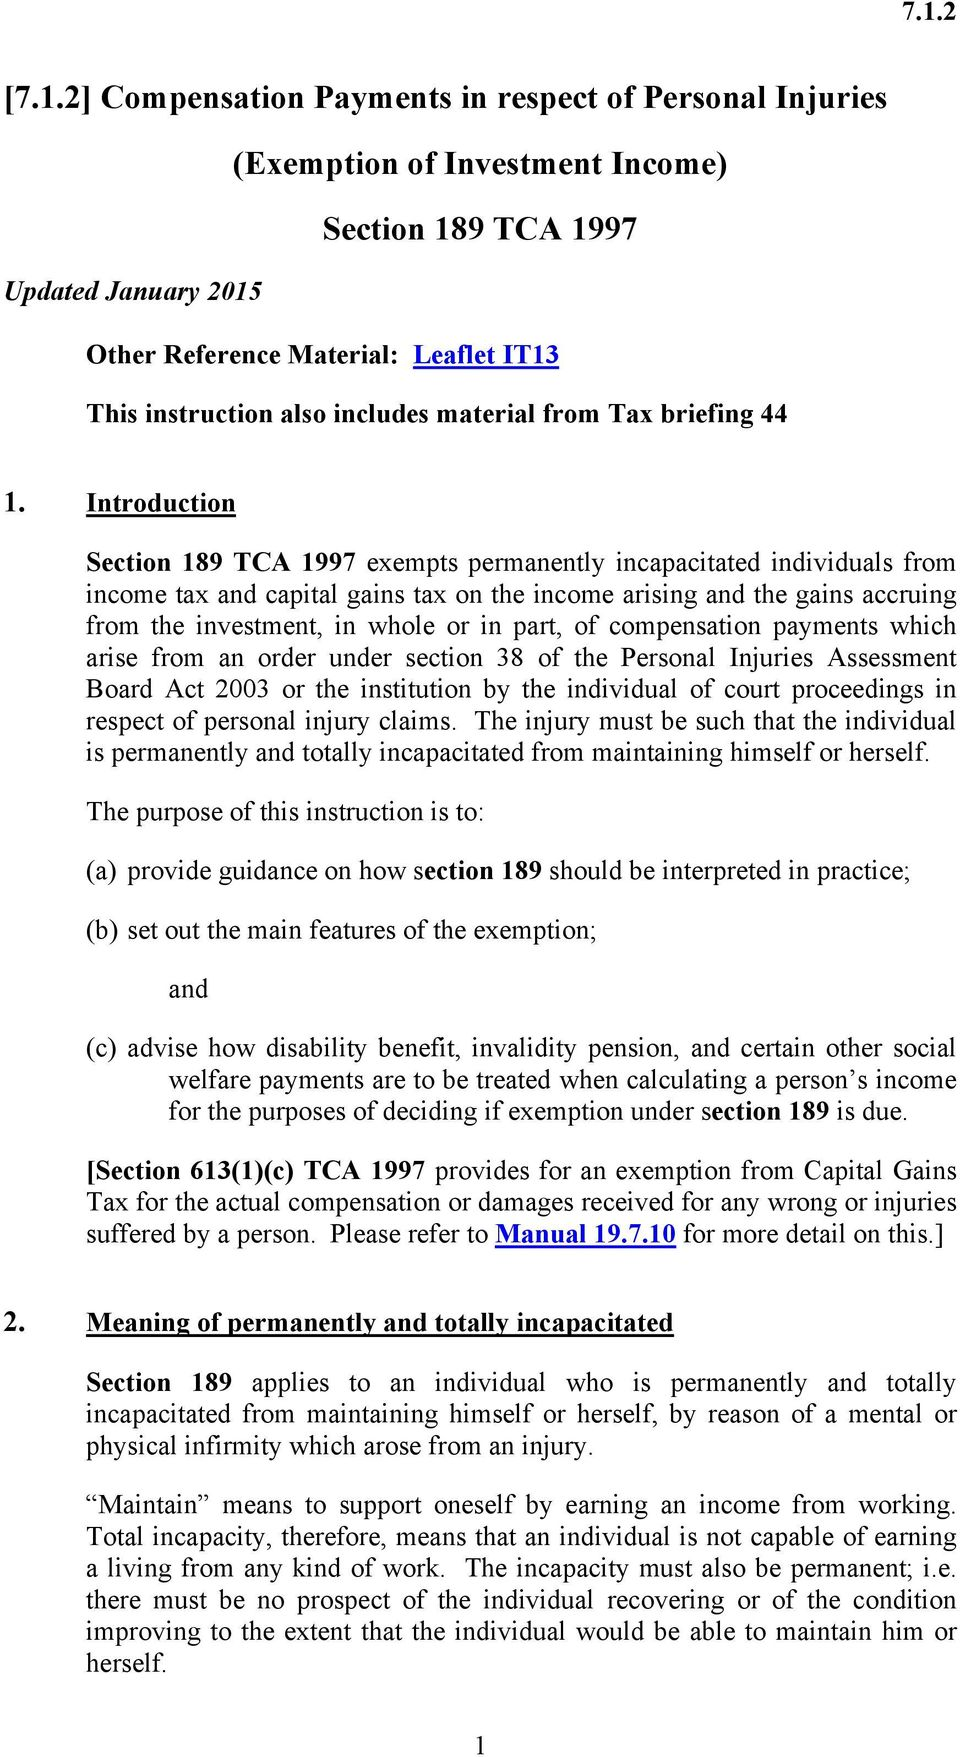 Introduction Section 189 TCA 1997 exempts permanently incapacitated individuals from income tax and capital gains tax on the income arising and the gains accruing from the investment, in whole or in